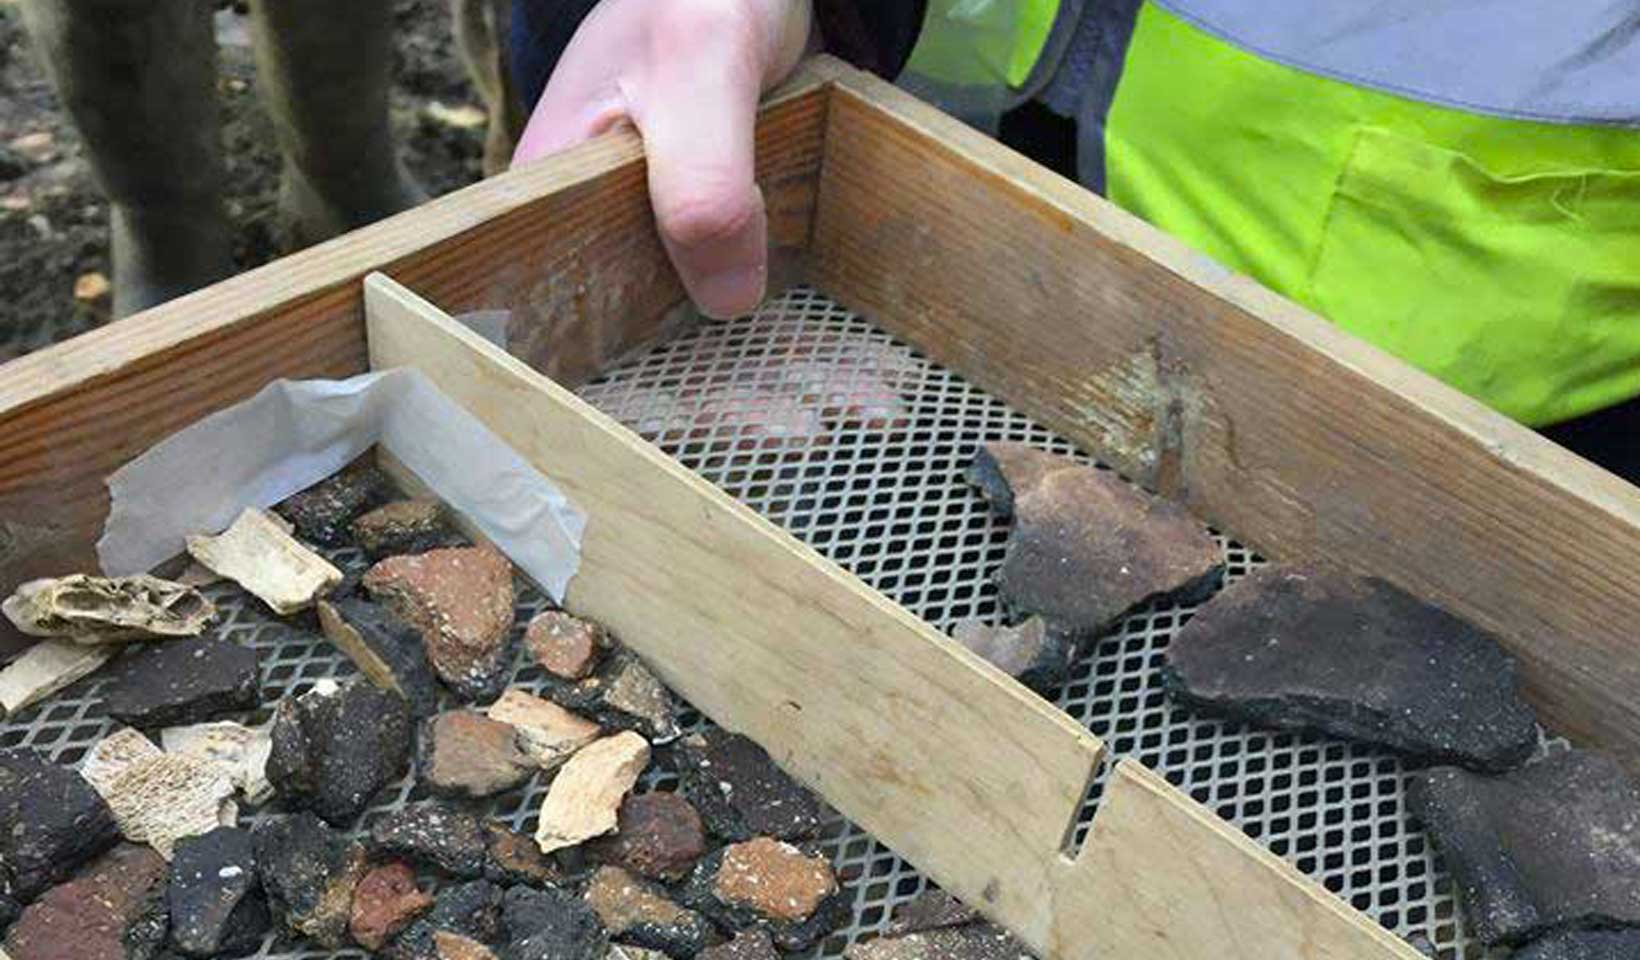 Archaeology finds at Wintringham St Neots